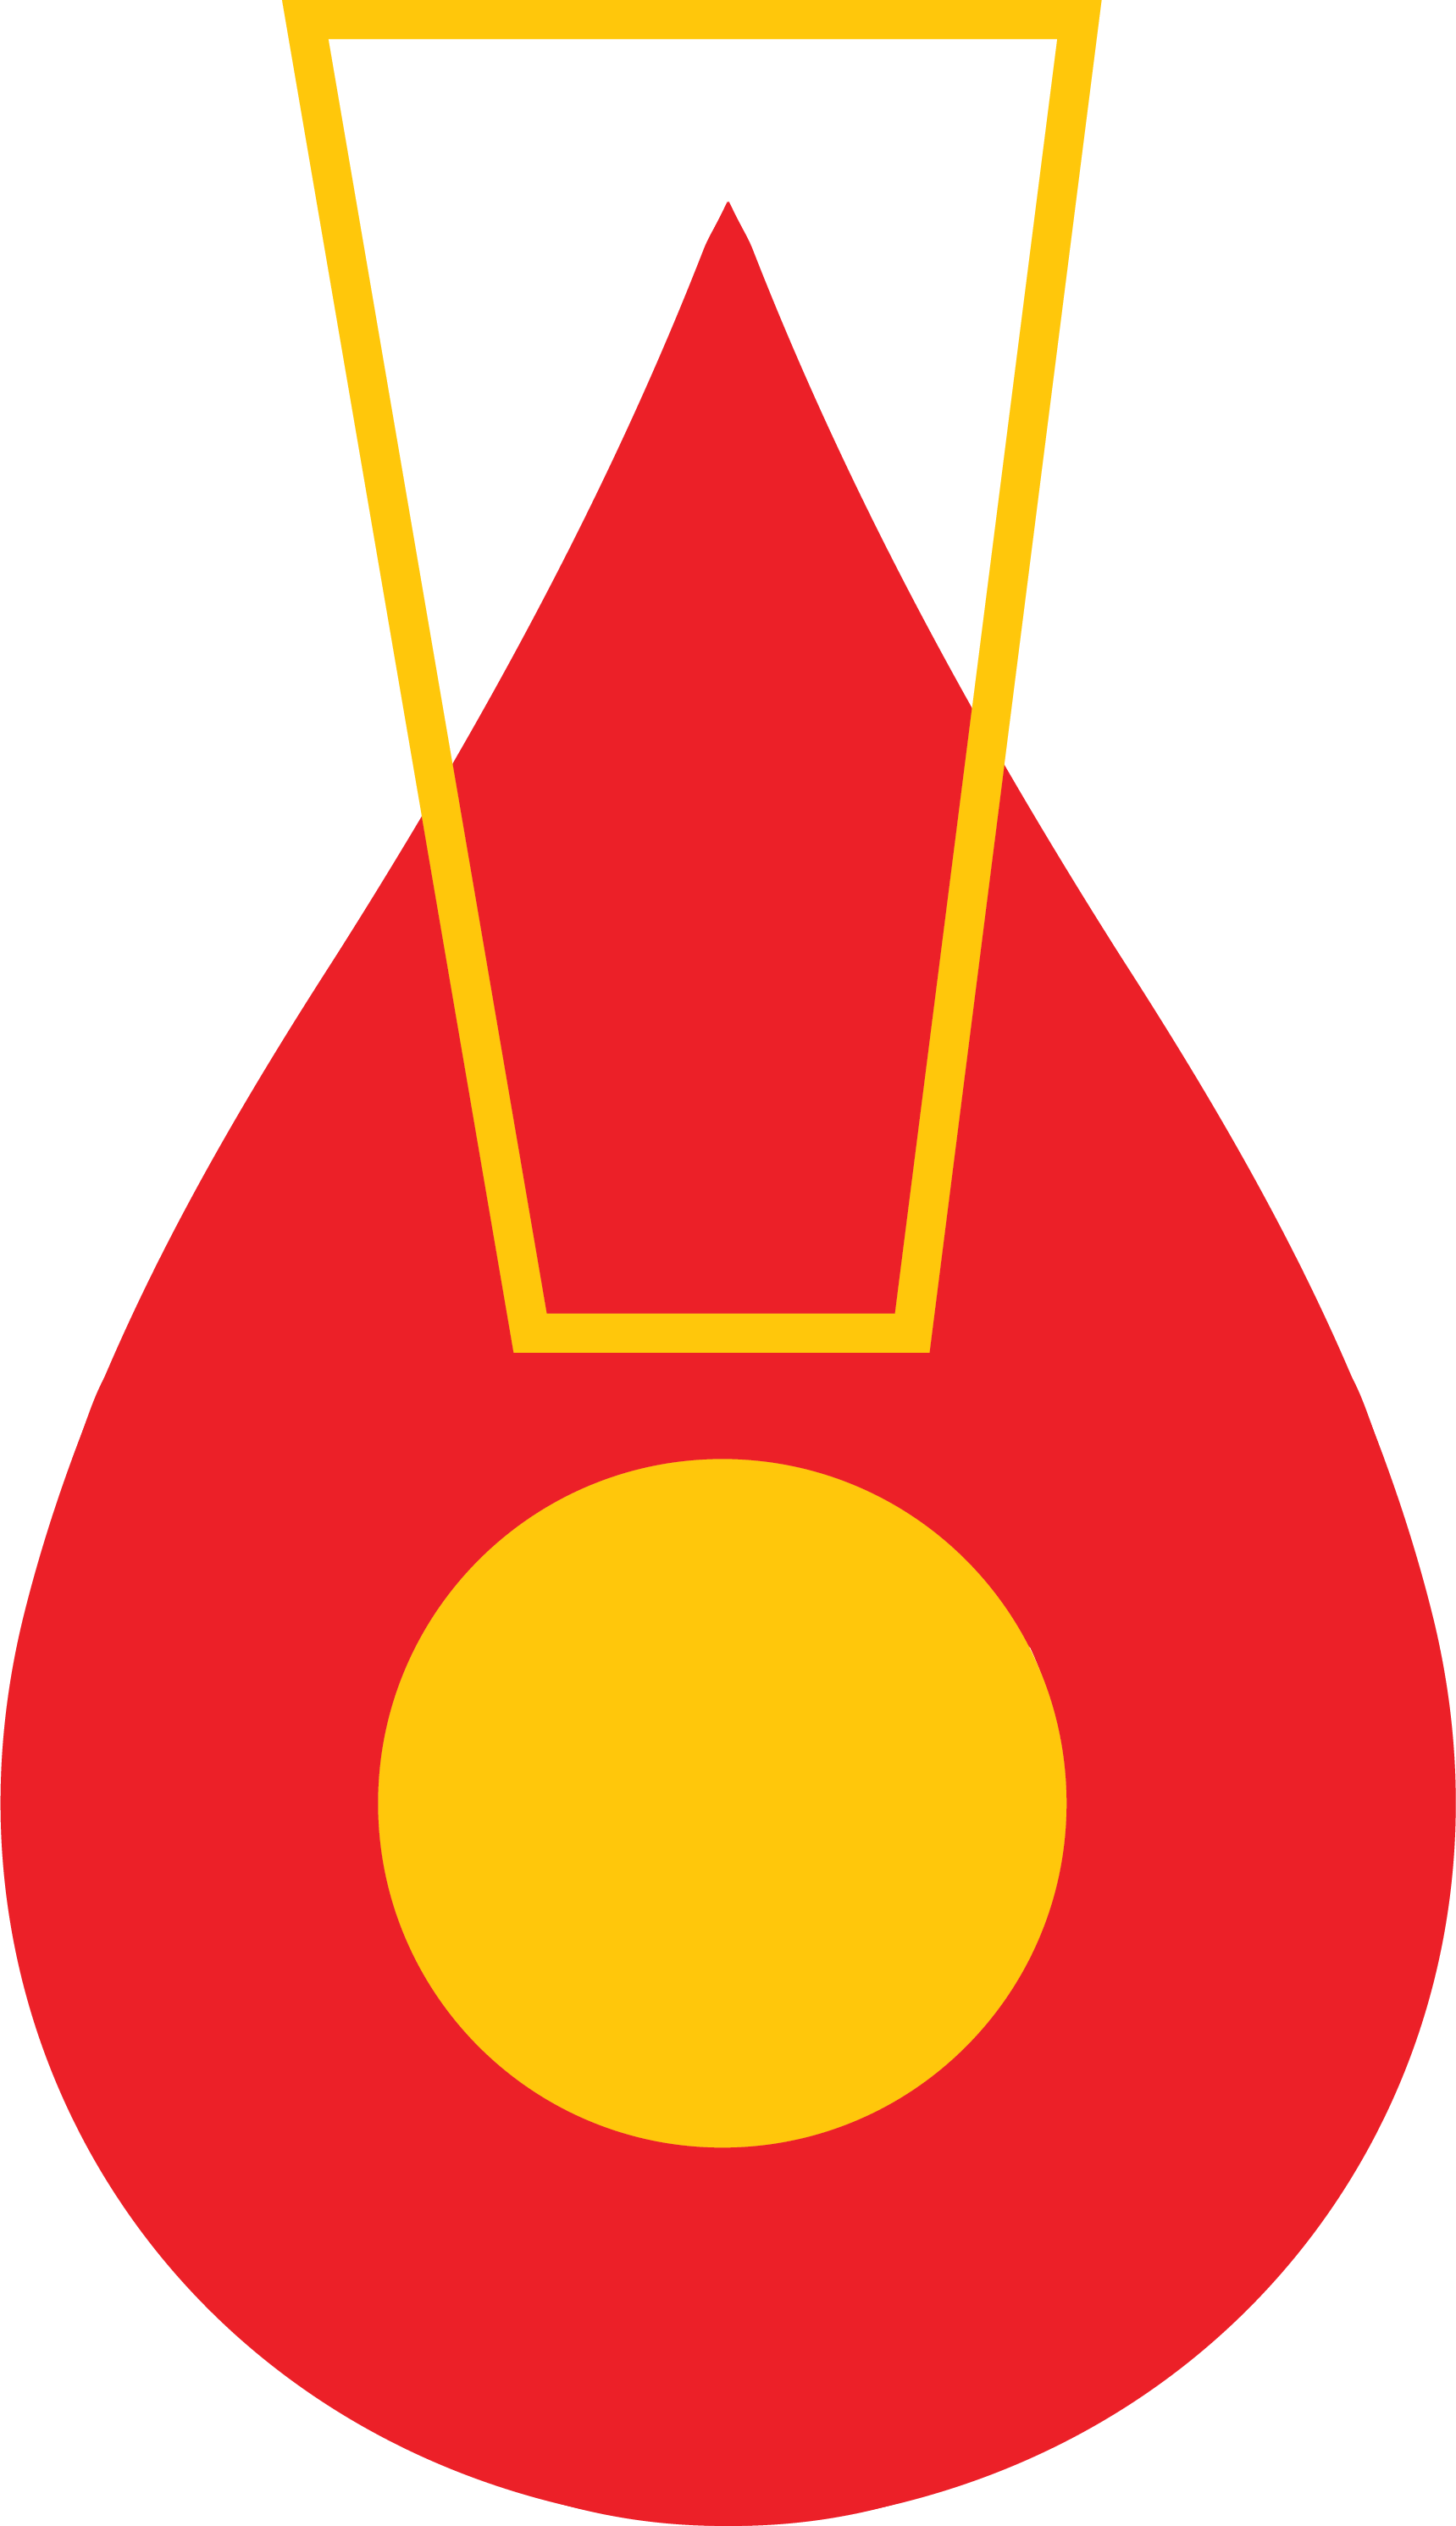 Blood Emergency Readiness Corps